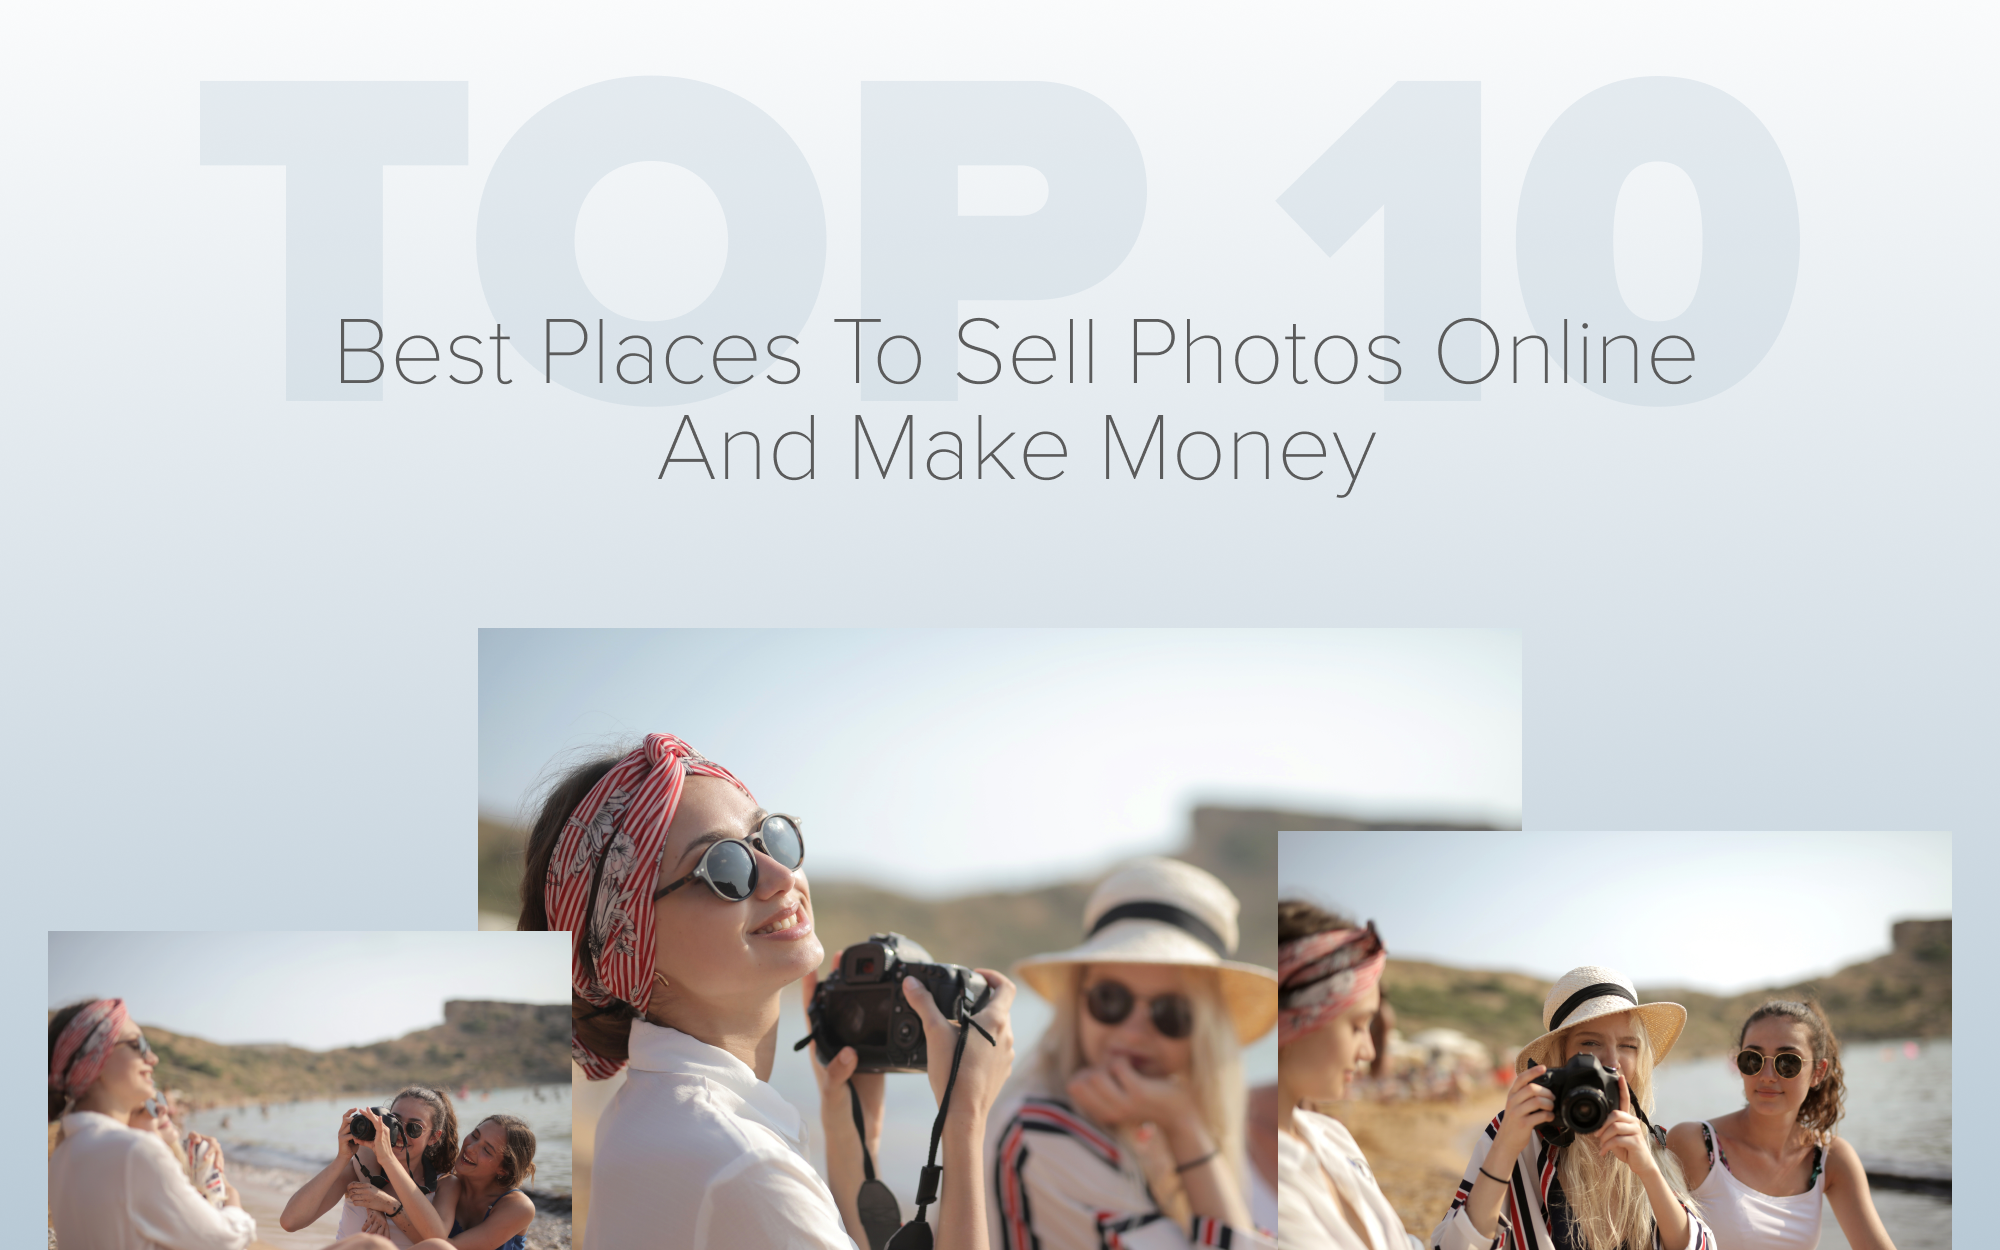 Top 10 Best Places to Sell Photos Online and Make Money